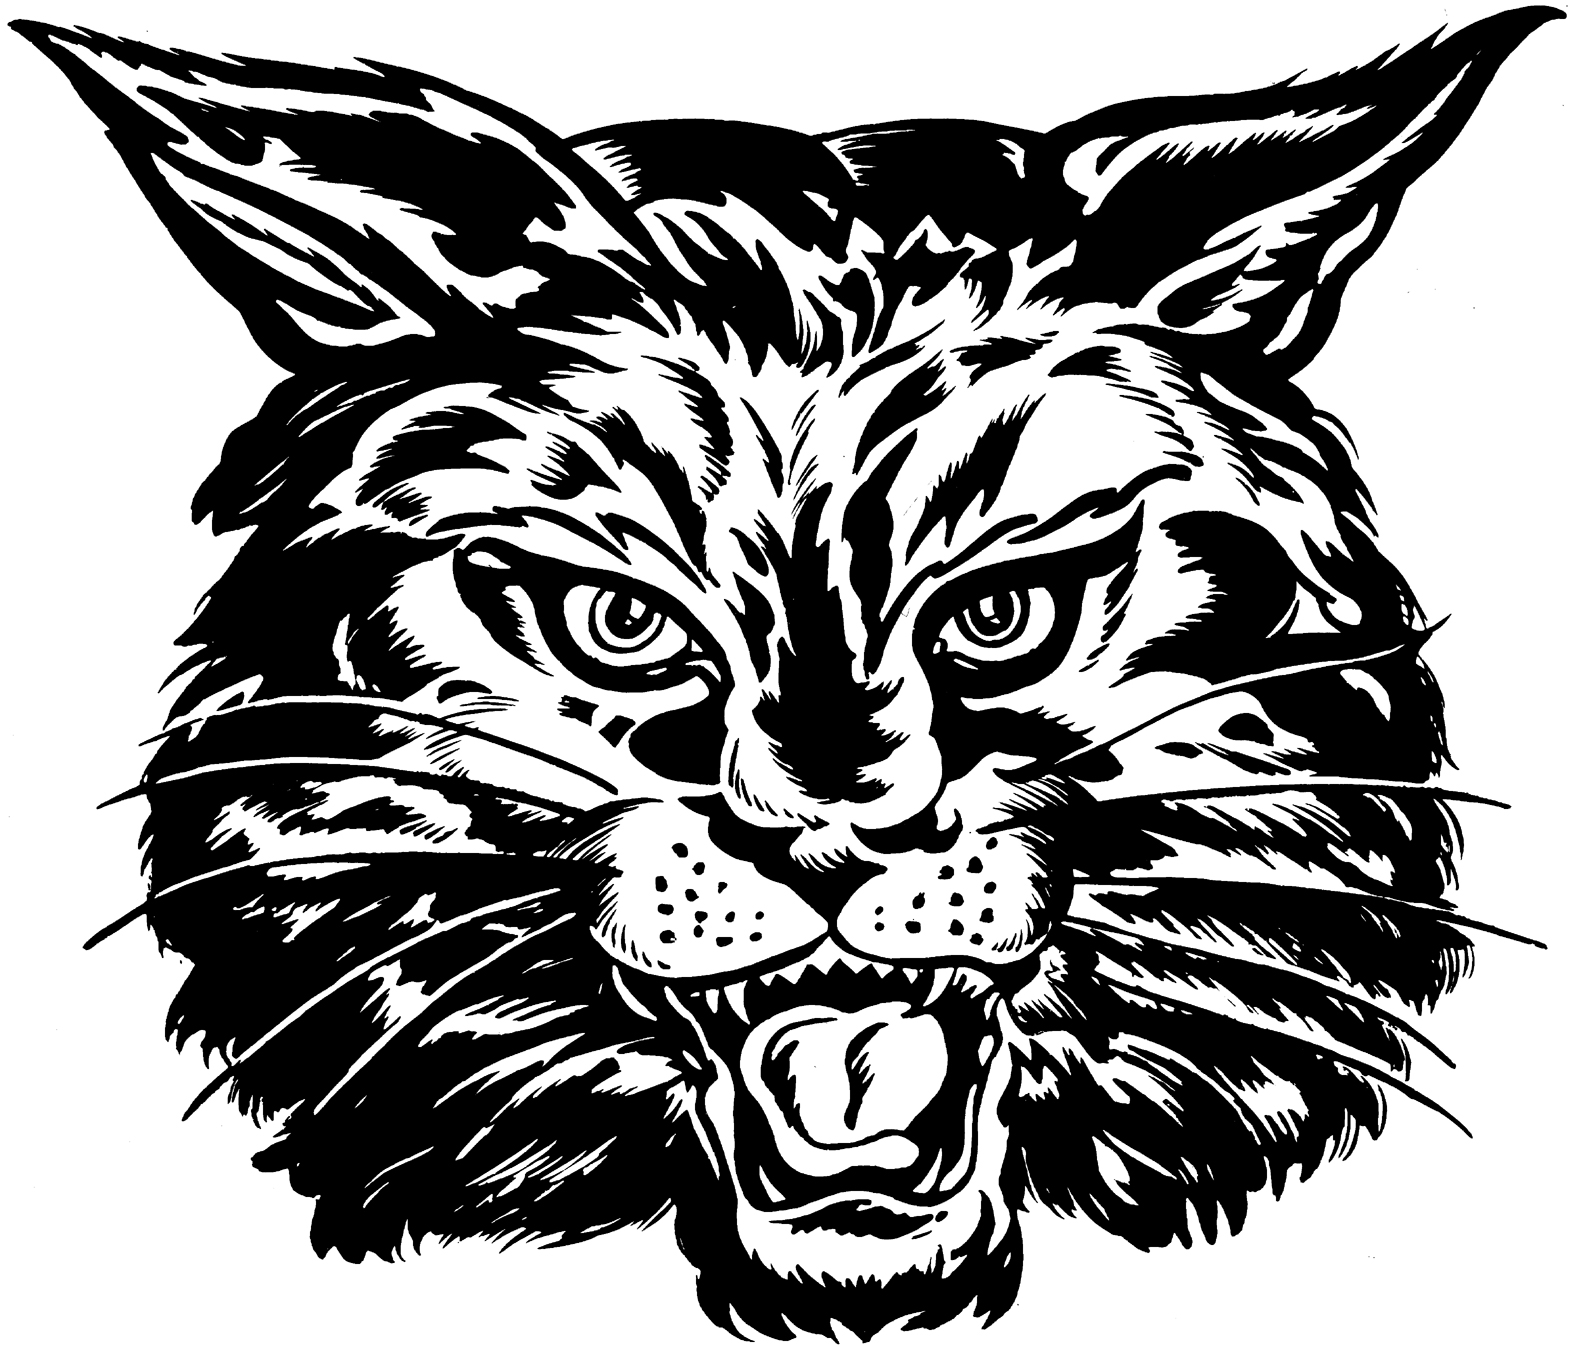 Wildcats mascot clipart vector royalty free stock Wildcat mascot clipart 7 » Clipart Station vector royalty free stock